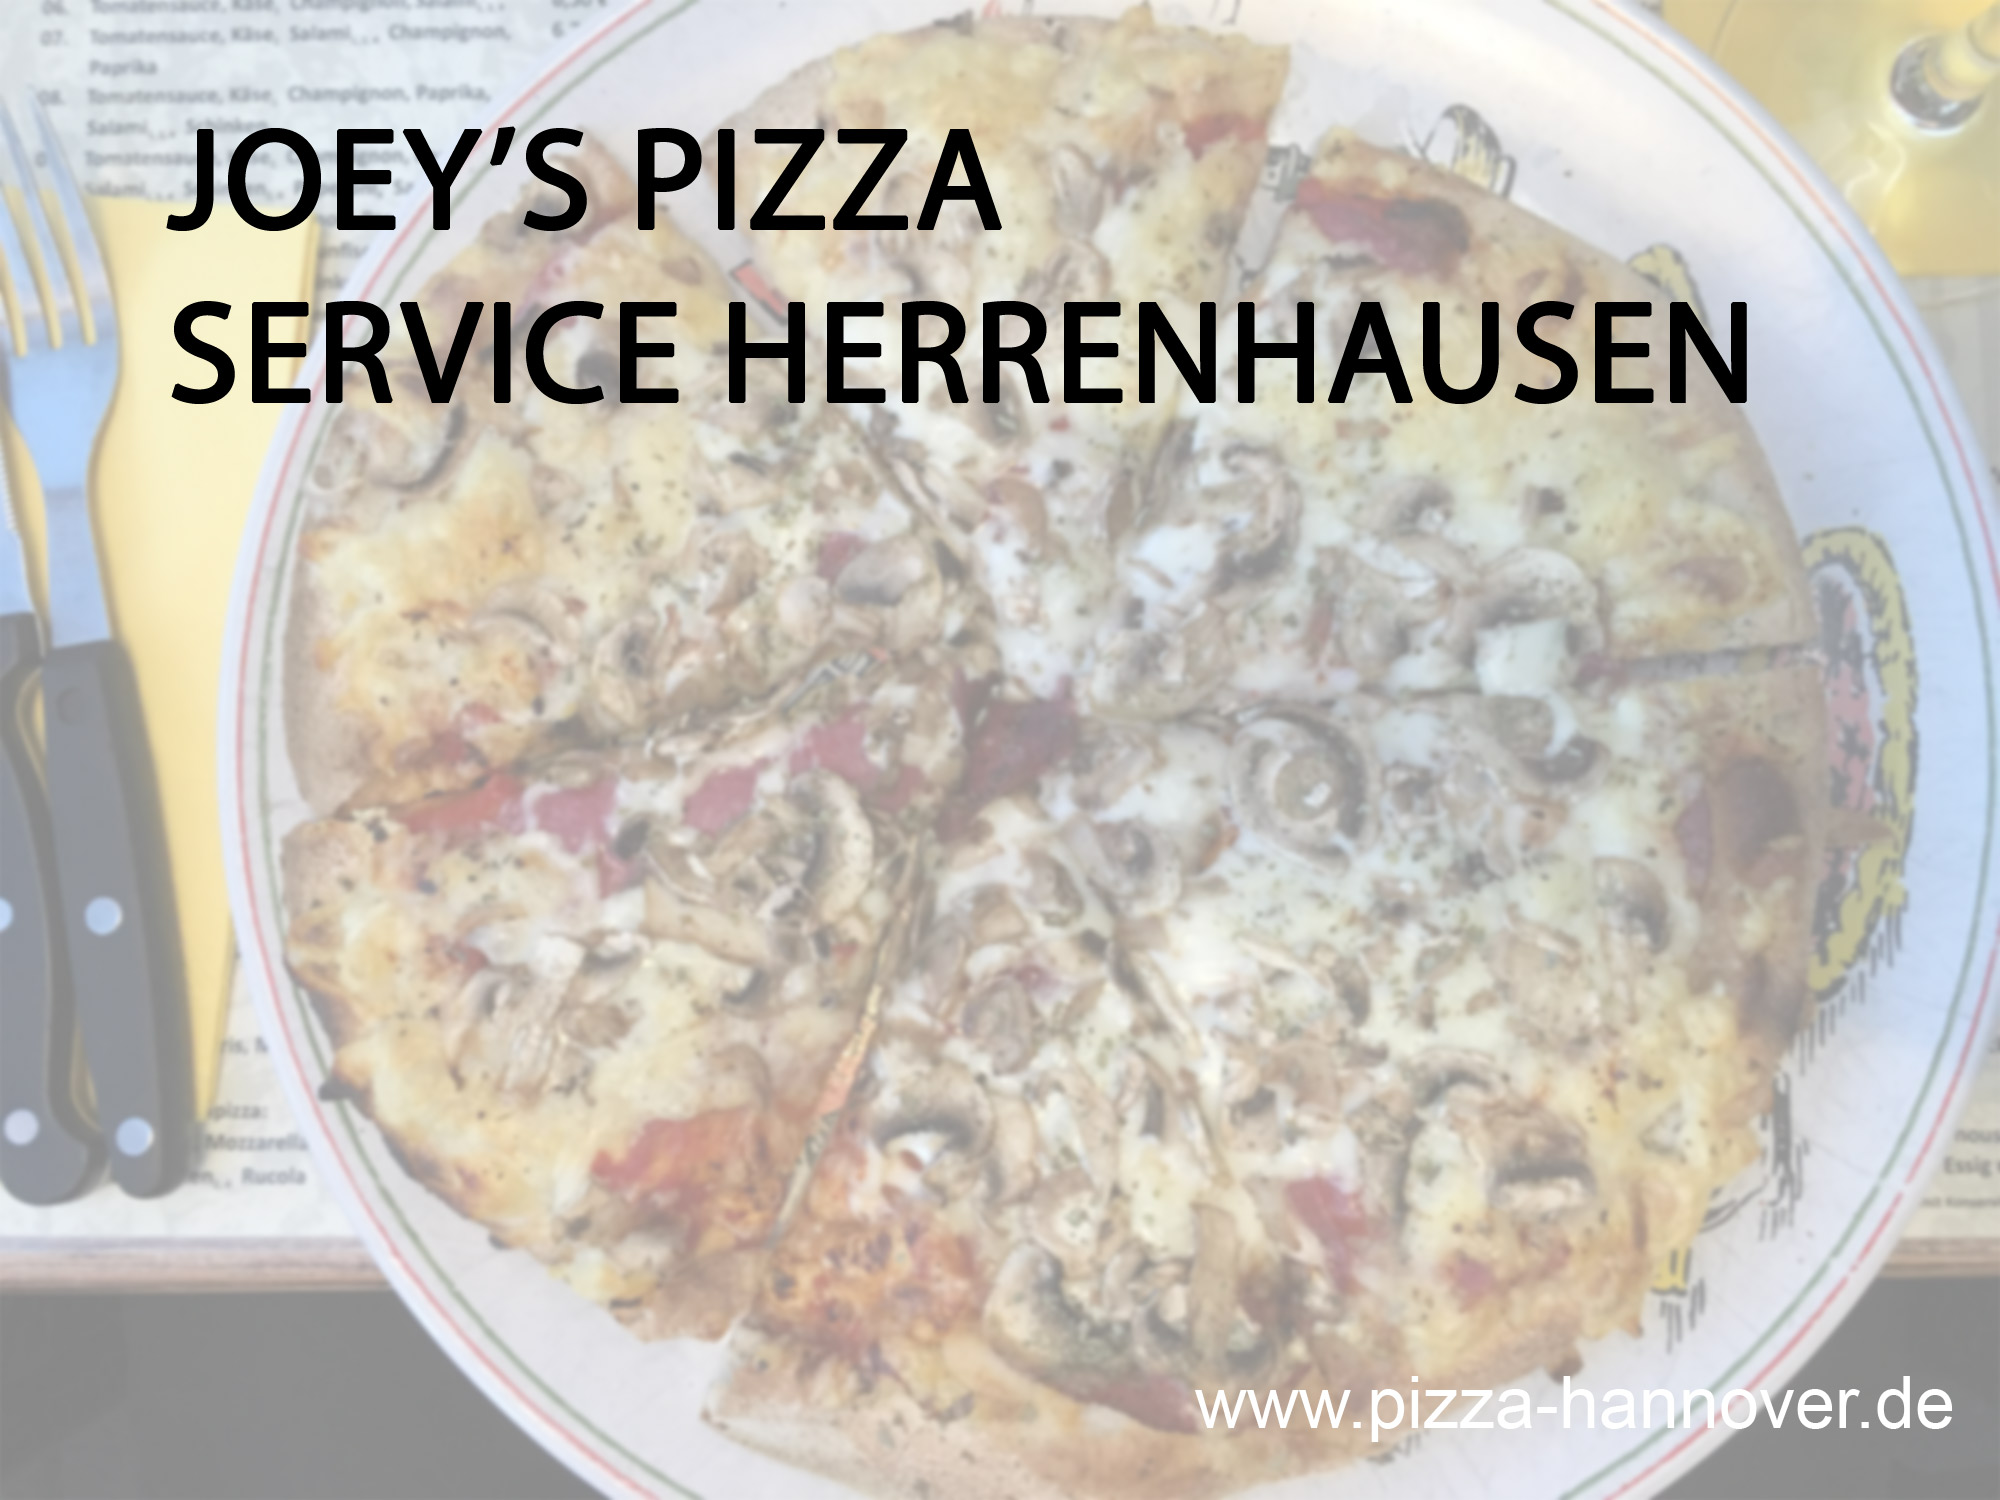 joey-s-pizza-service-herrenhausen-pizza-hannover